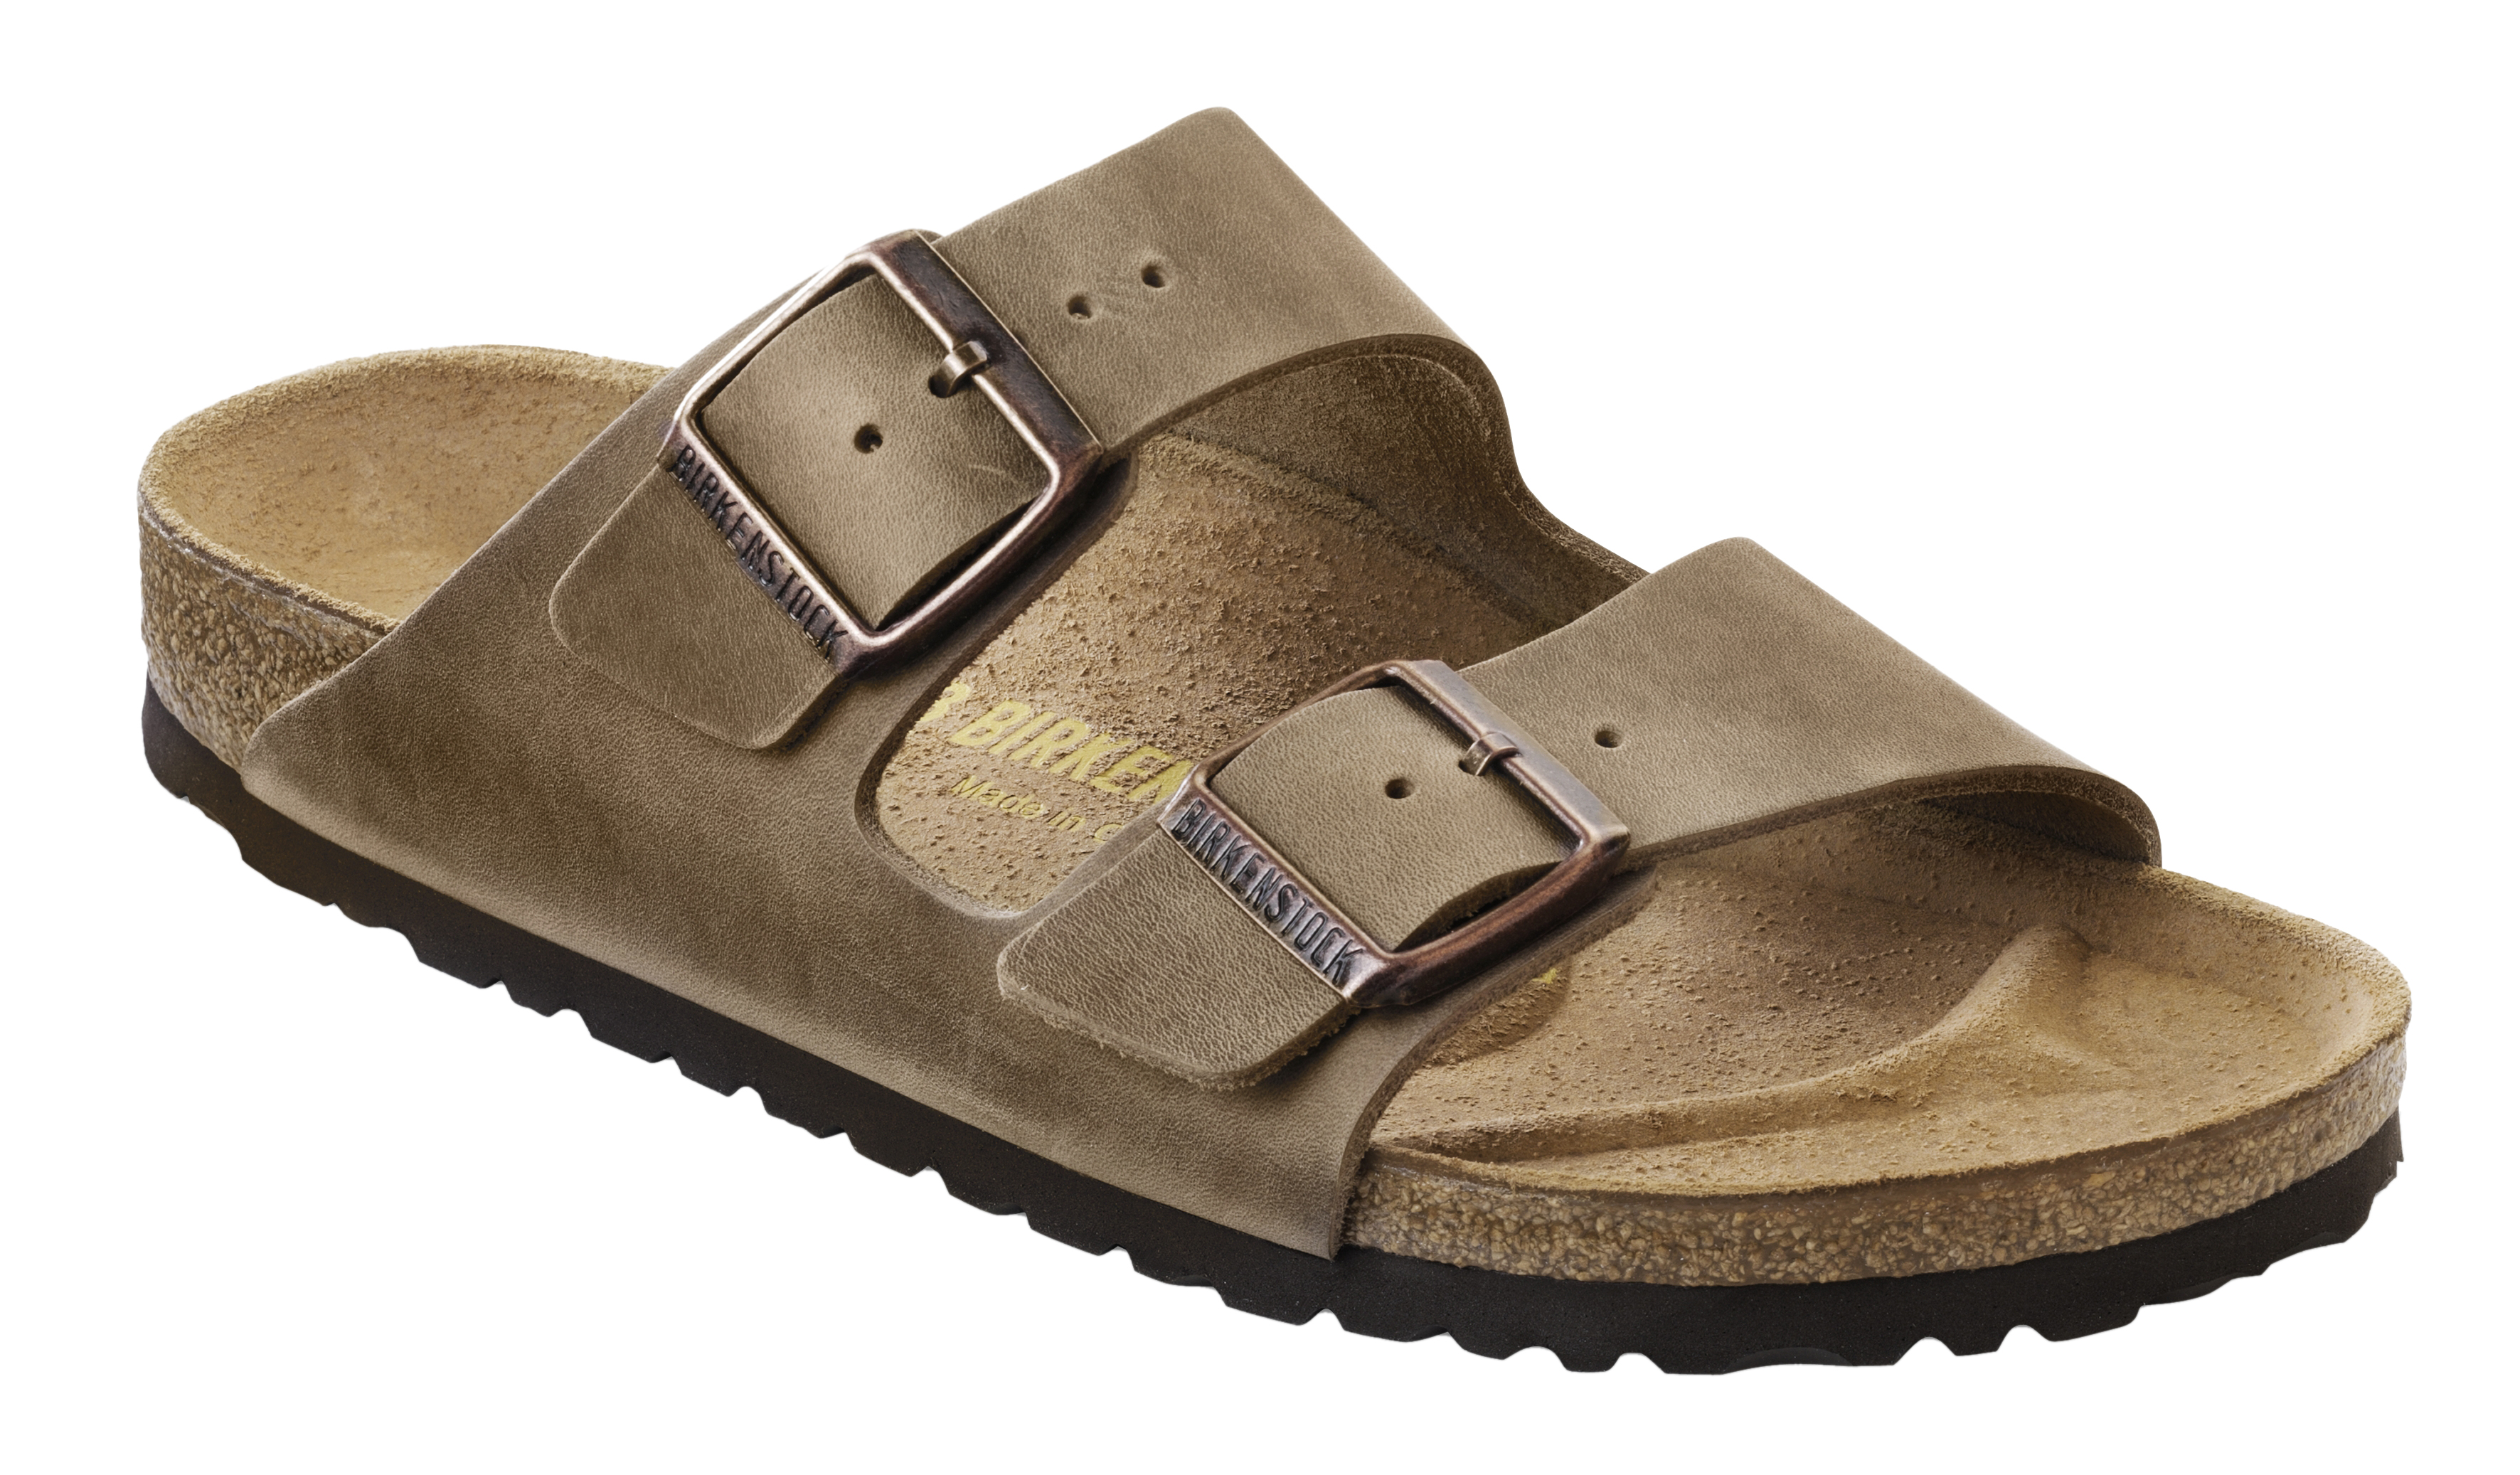 a30549122b9a Birkenstock Arizona Leather Sandals - Unisex